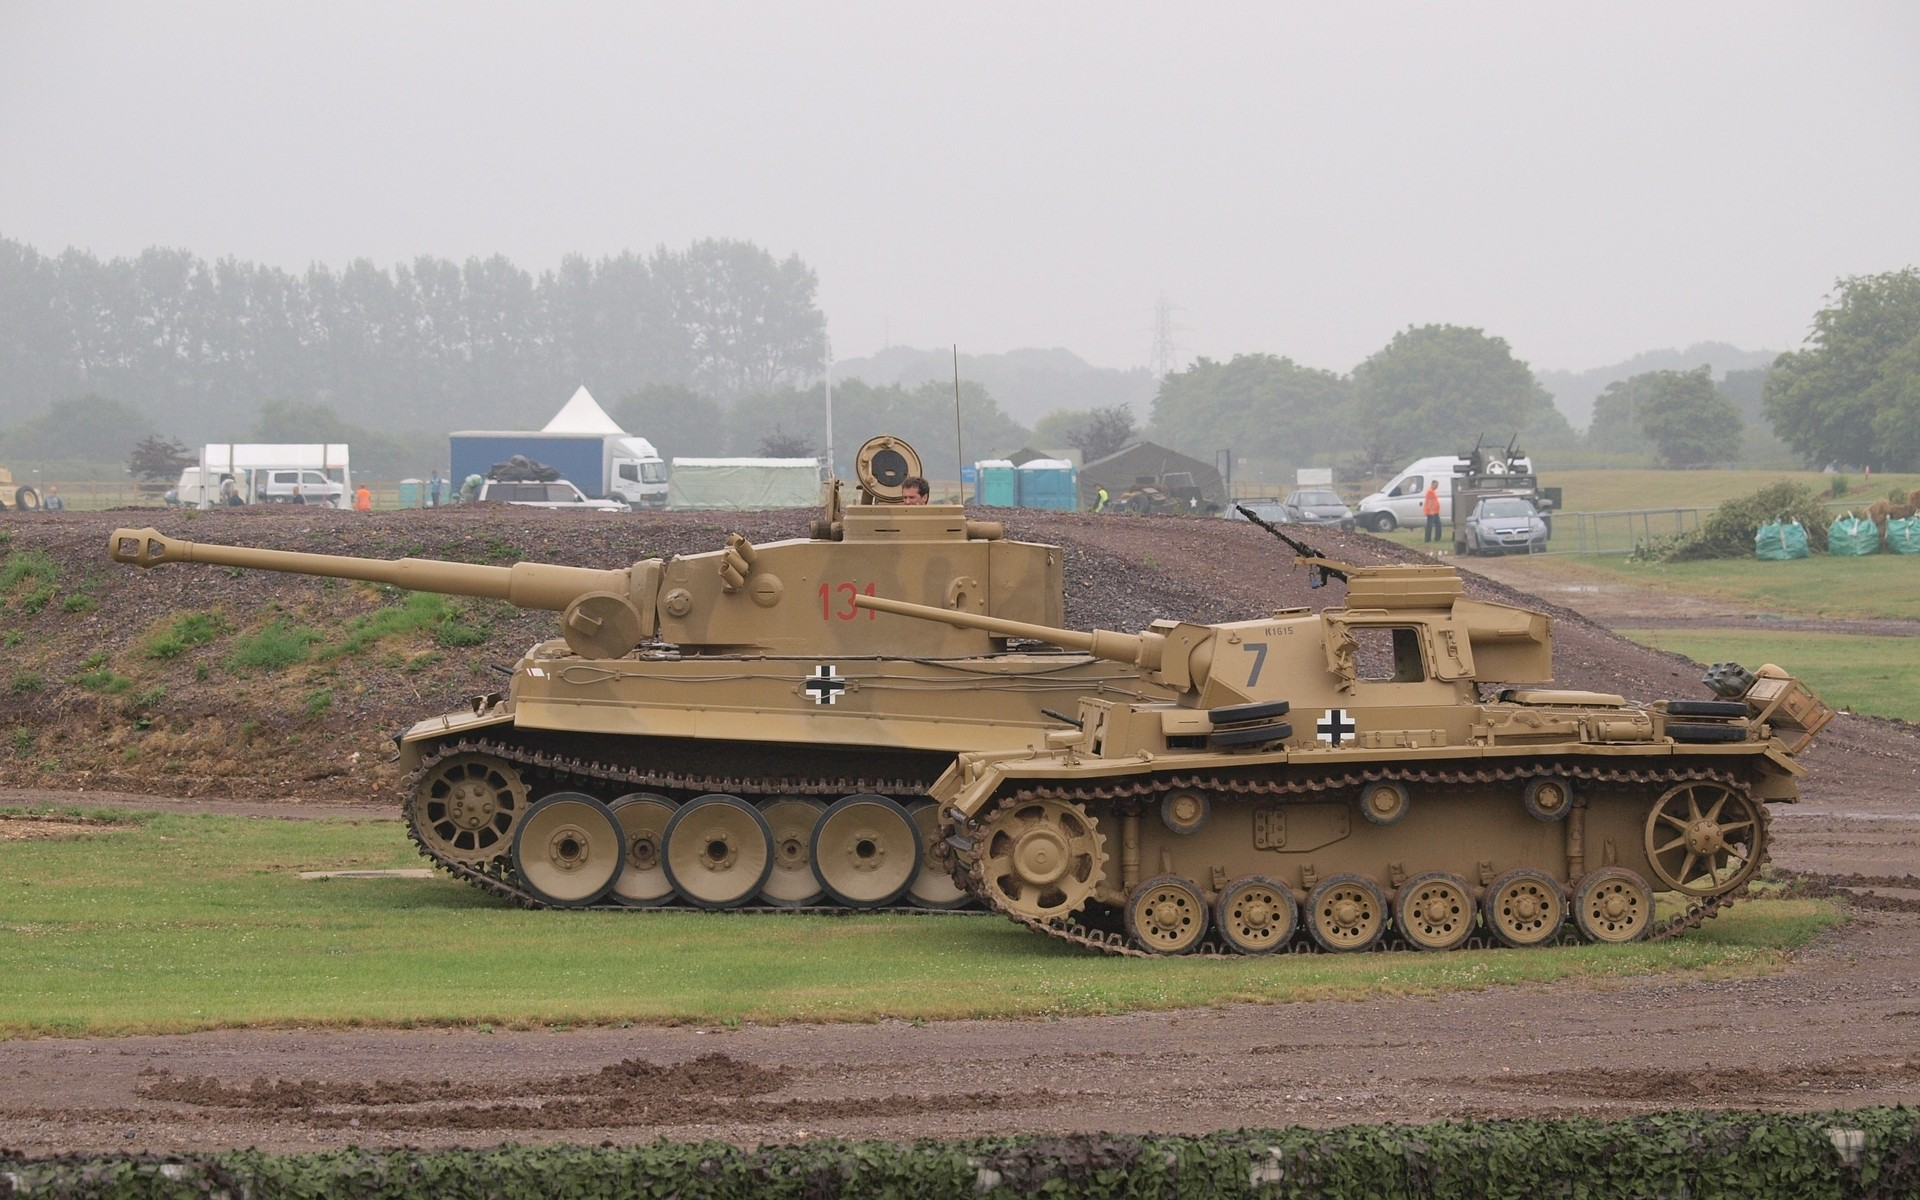 Tiger 131 And A Panzer Iii At Tank Fest Fondo De Pantalla